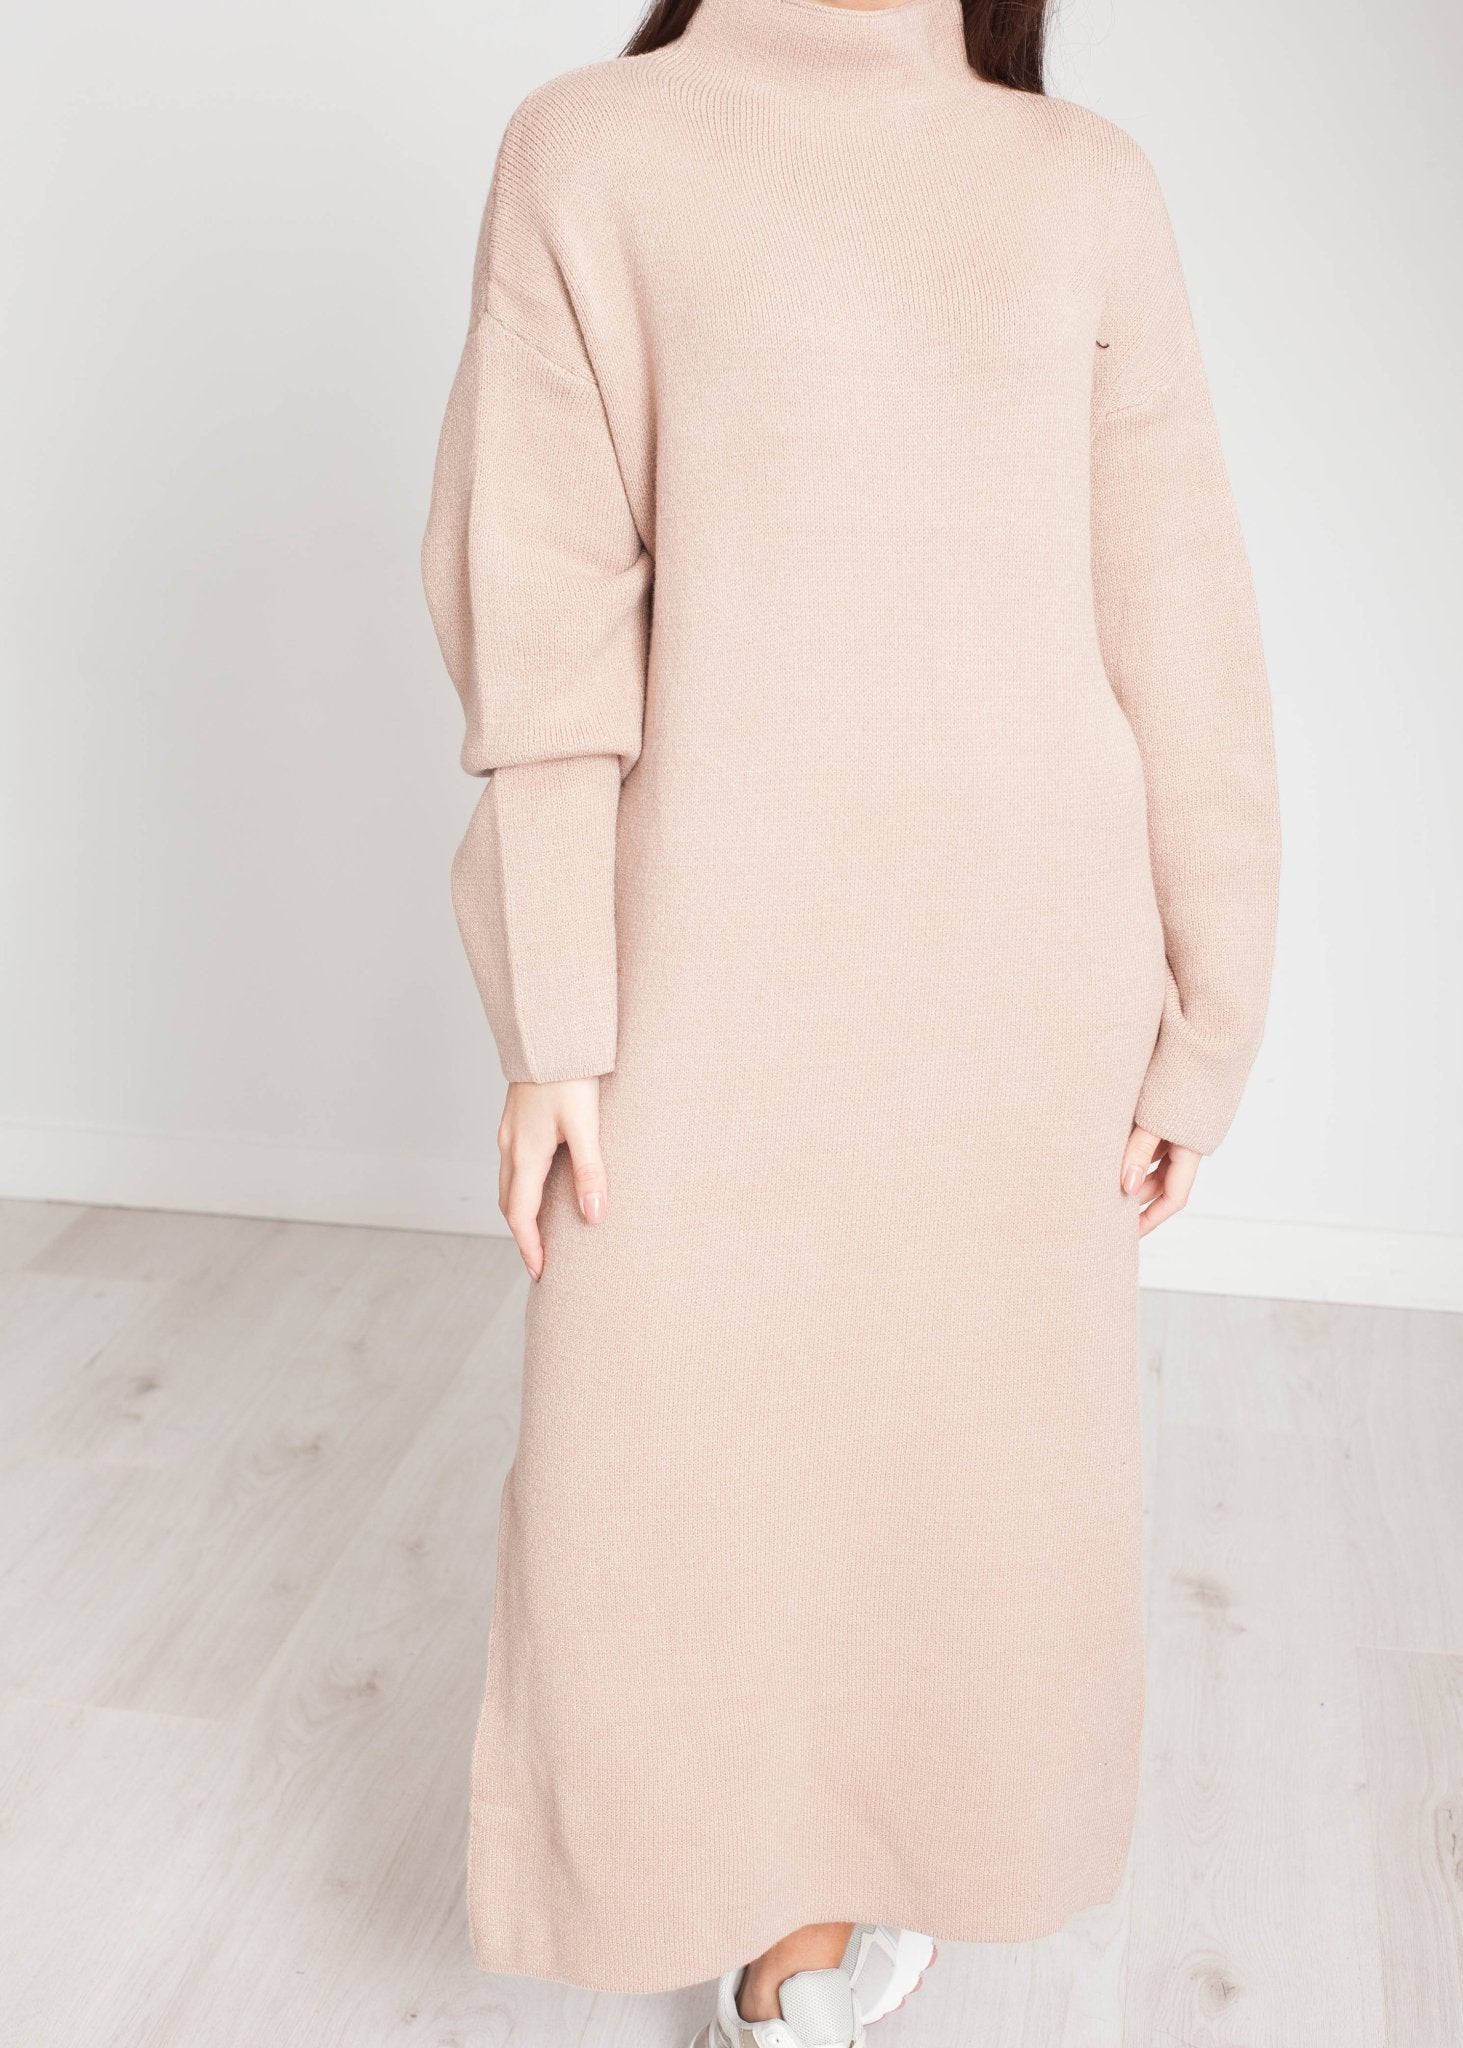 Elsa Longline Knit Dress In Beige - The Walk in Wardrobe